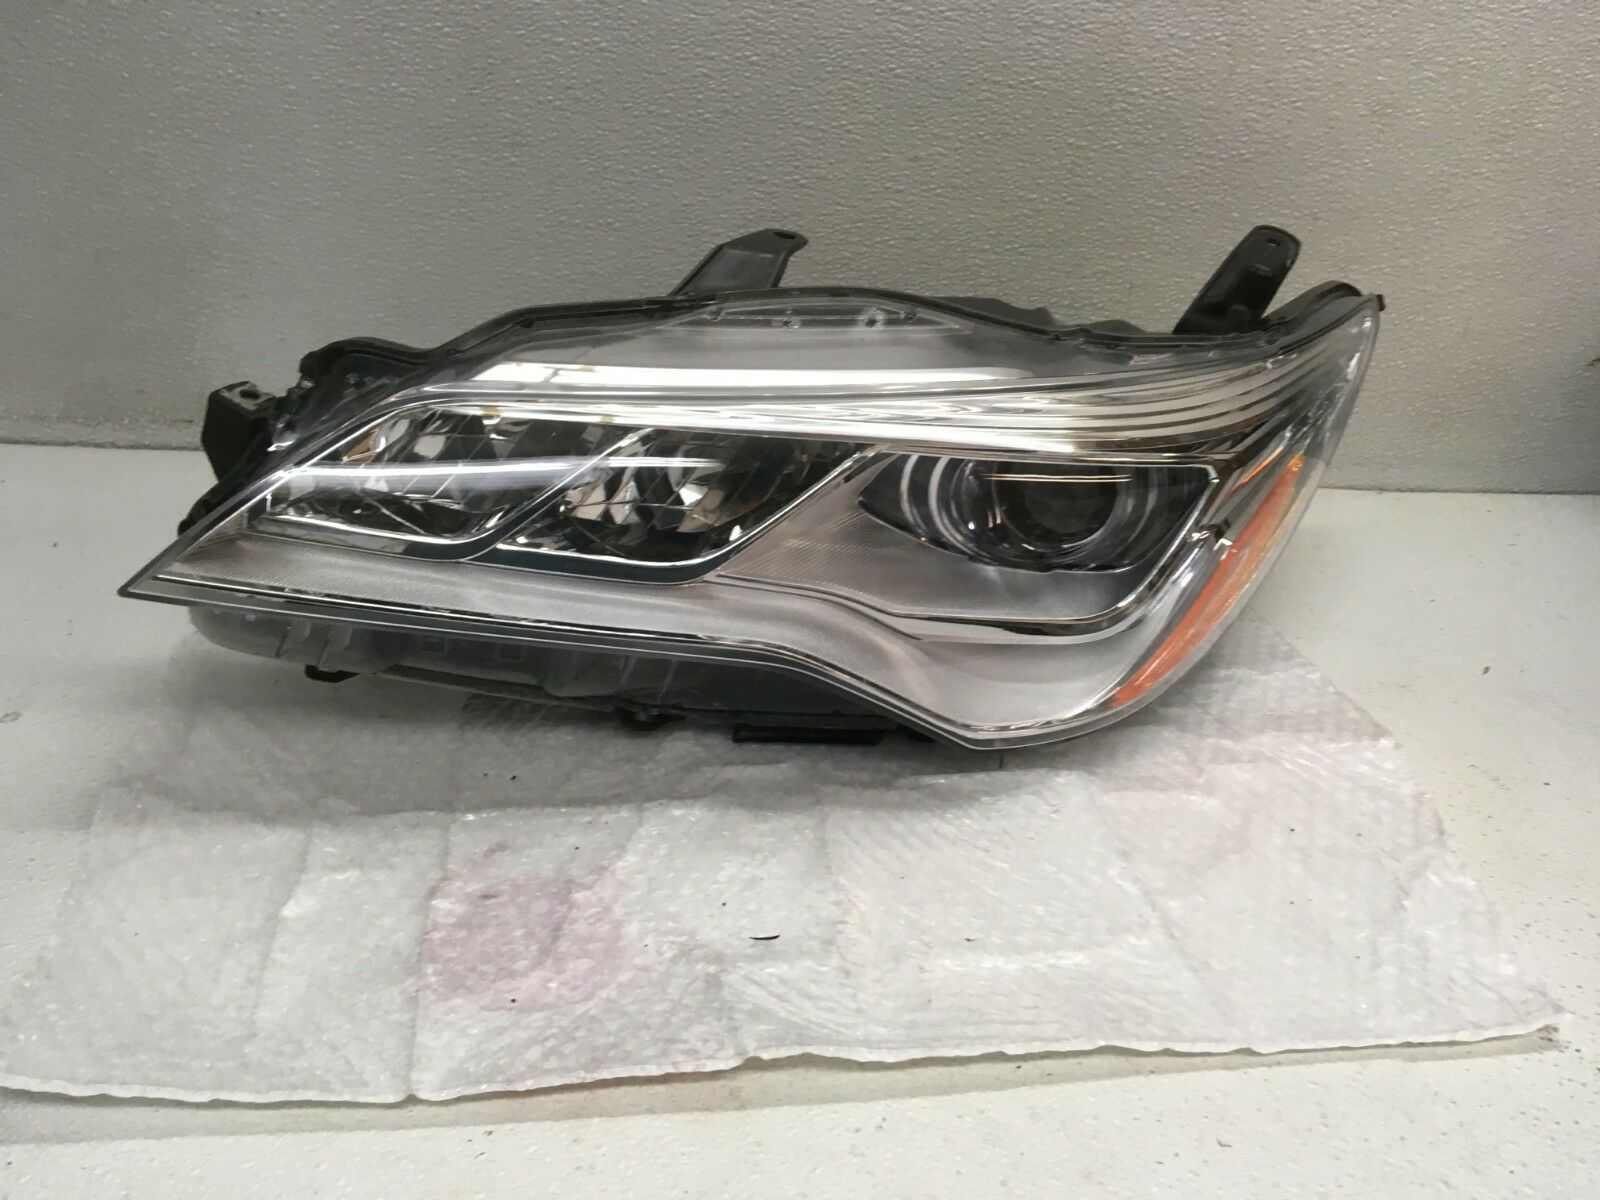 EUROPE USED CAMRY 2016 HEADLIGHT SET